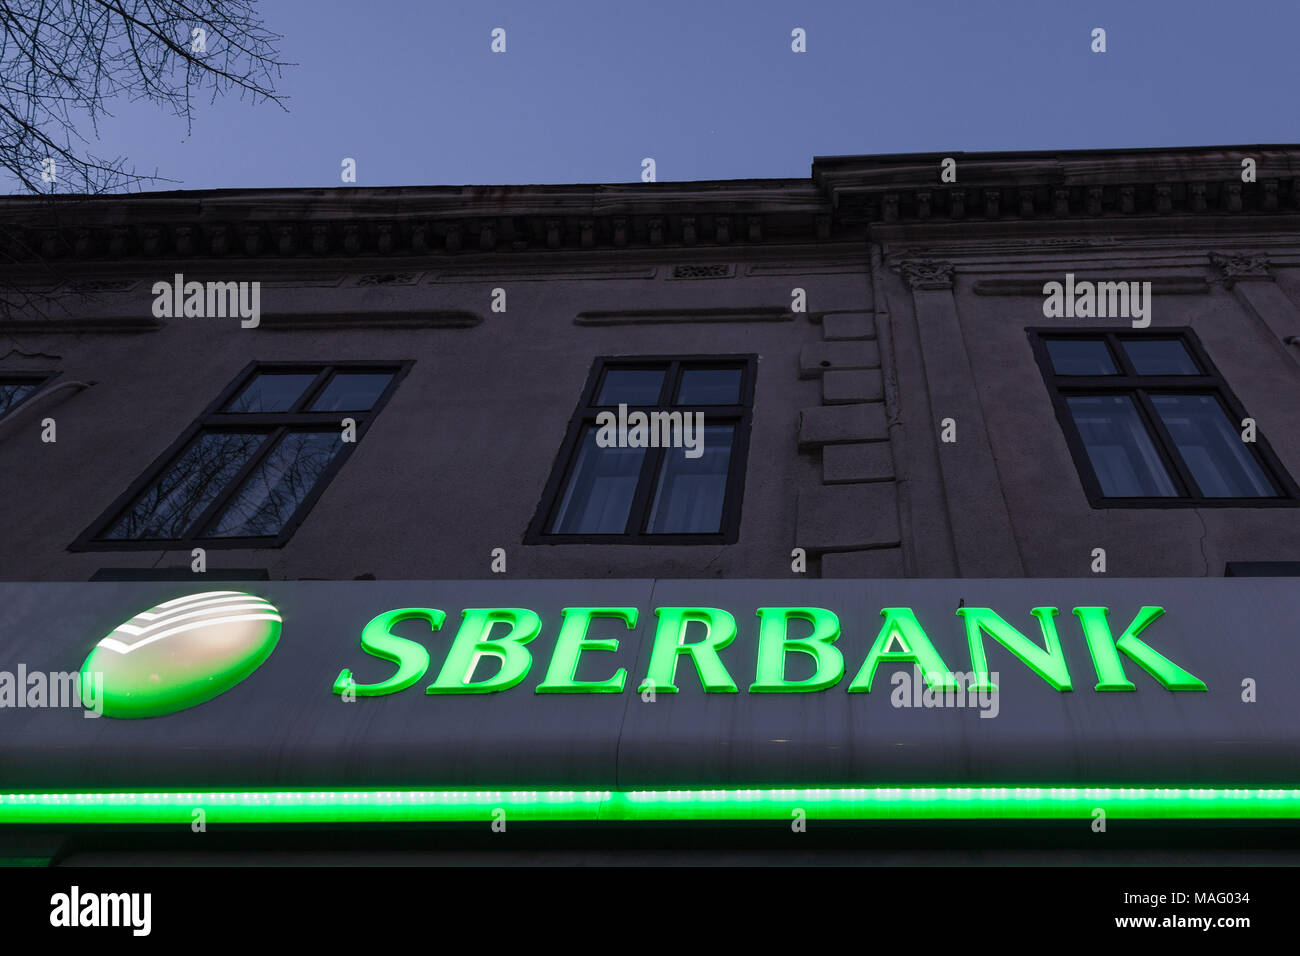 BELGRADE, SERBIA - MARCH 25, 2018: Sberbank logo lit on a subsidiary of Belgrade, during the evening. Sberbank is one of the biggest banks of Russia,  - Stock Image